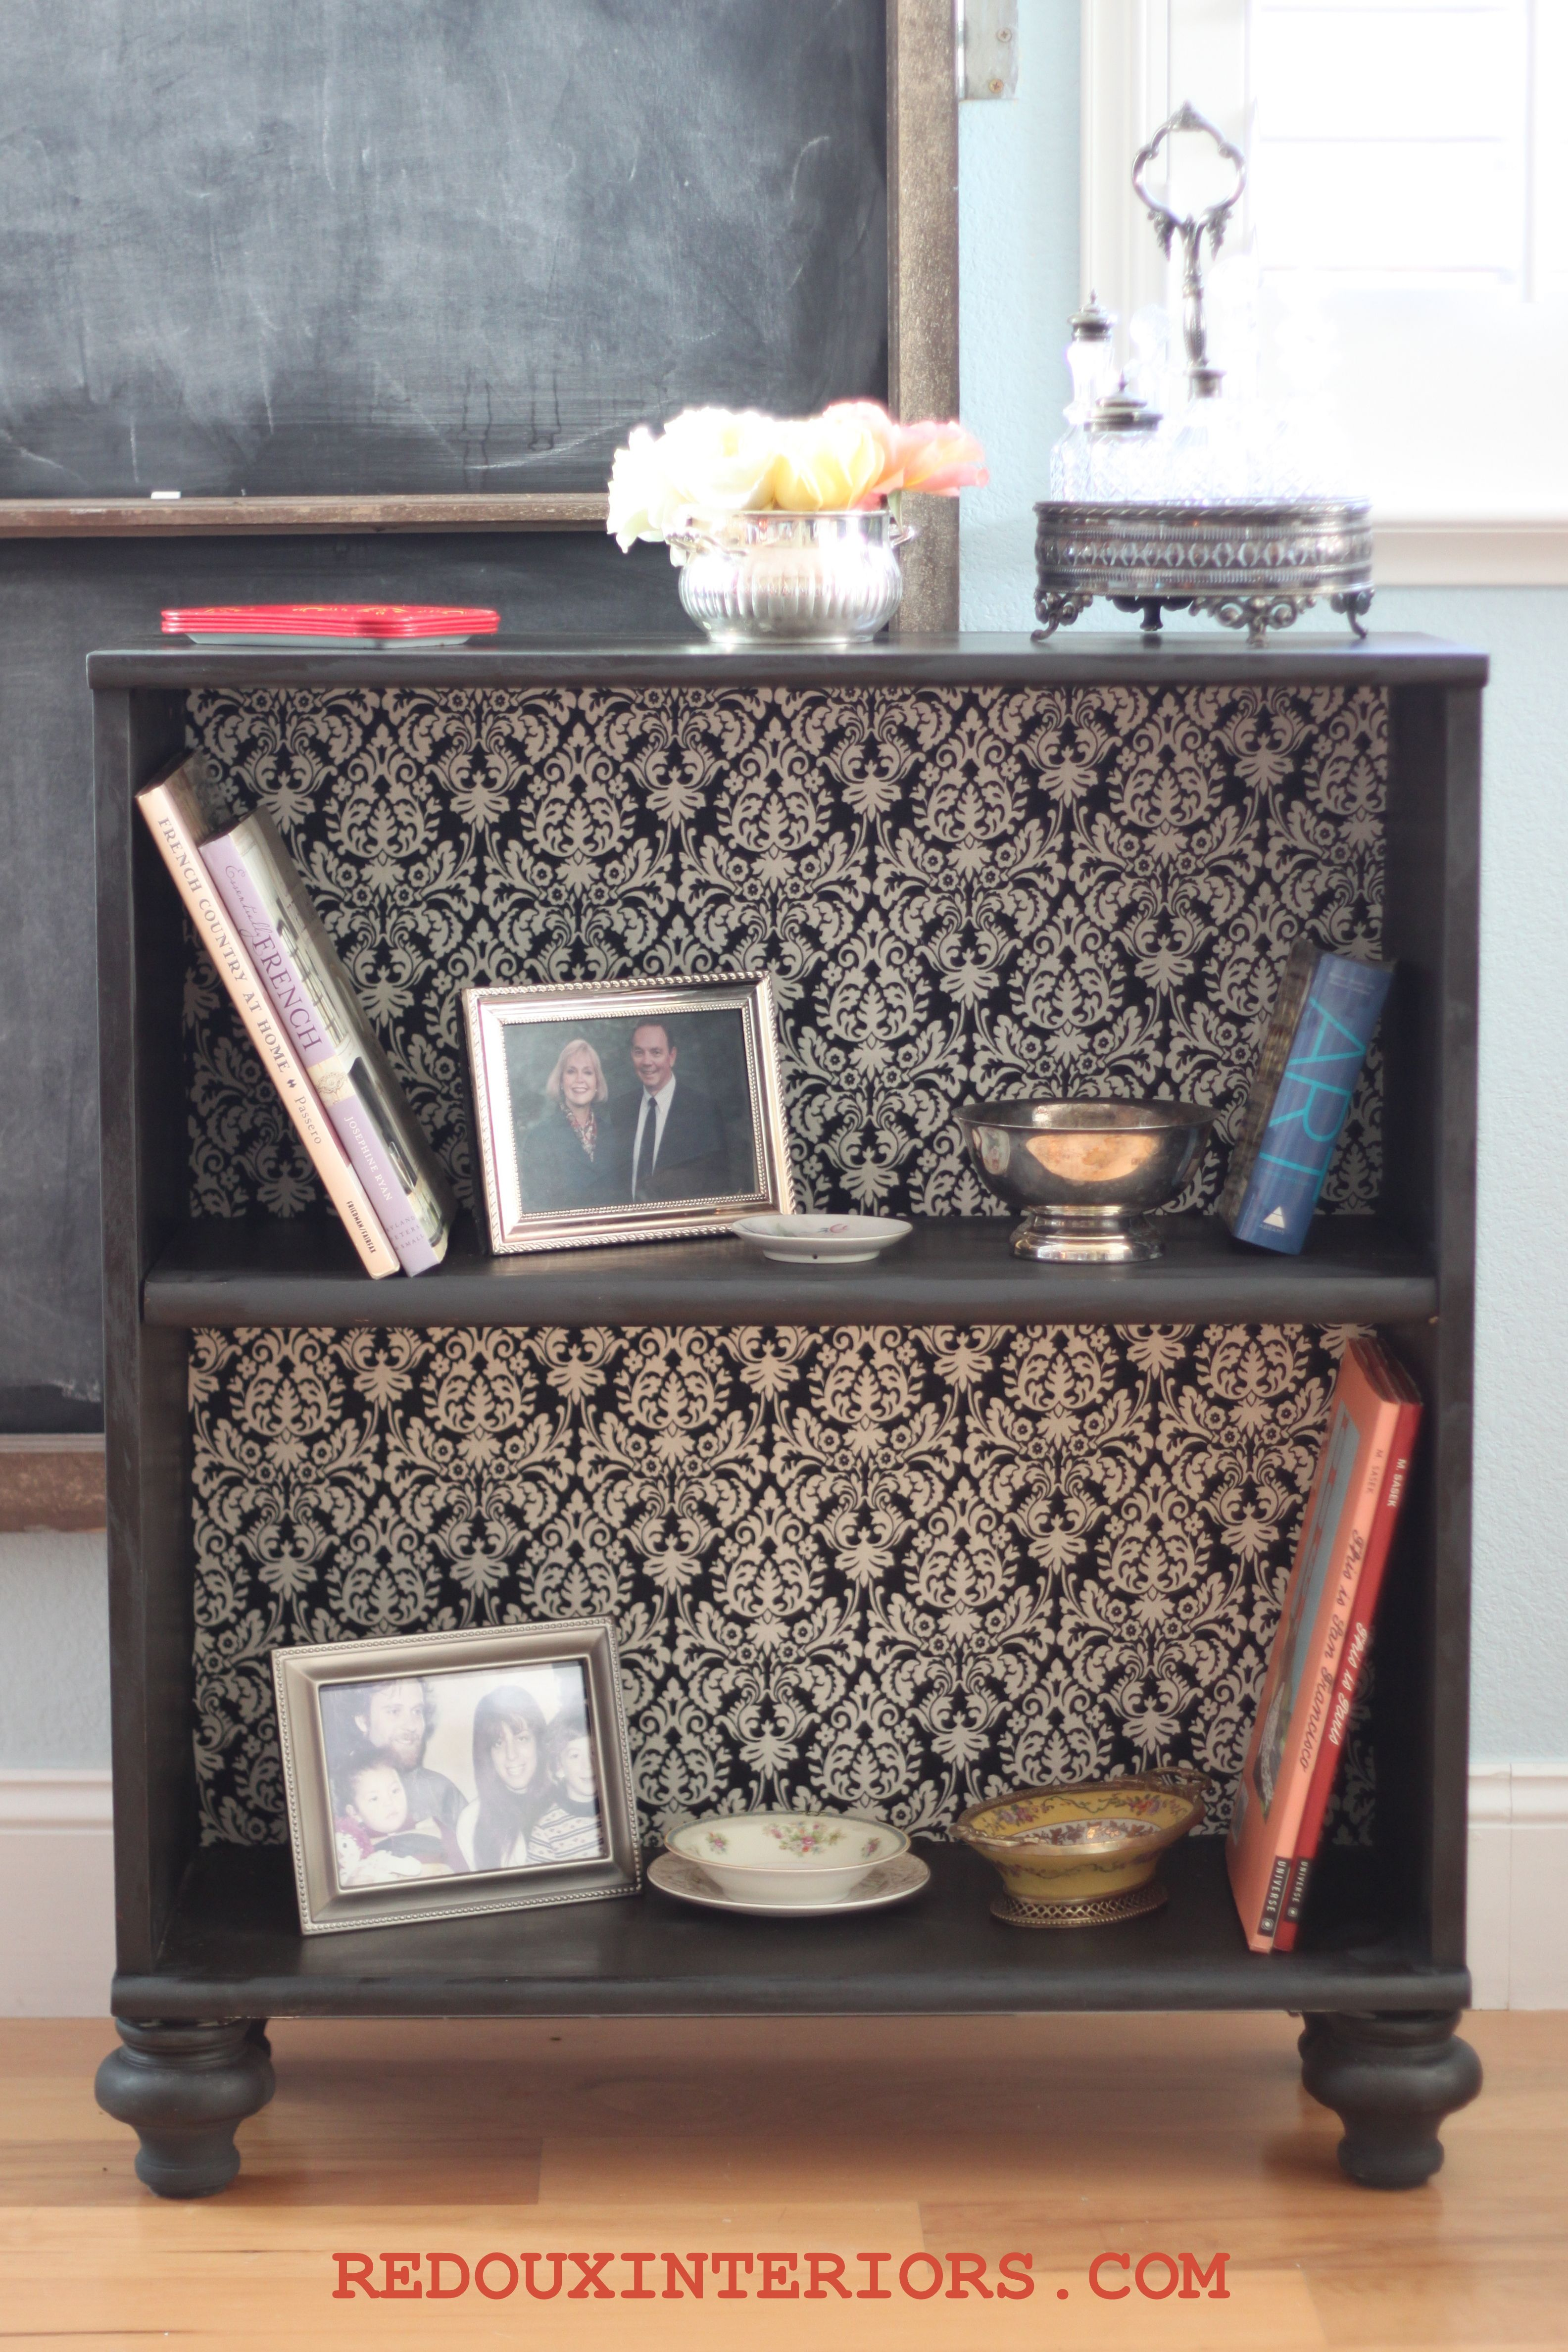 Add Feet To Cheap Bookshelves Or Dressers Before Painting For An Immediate Upgrade Fabric Added With Spray Adhesive